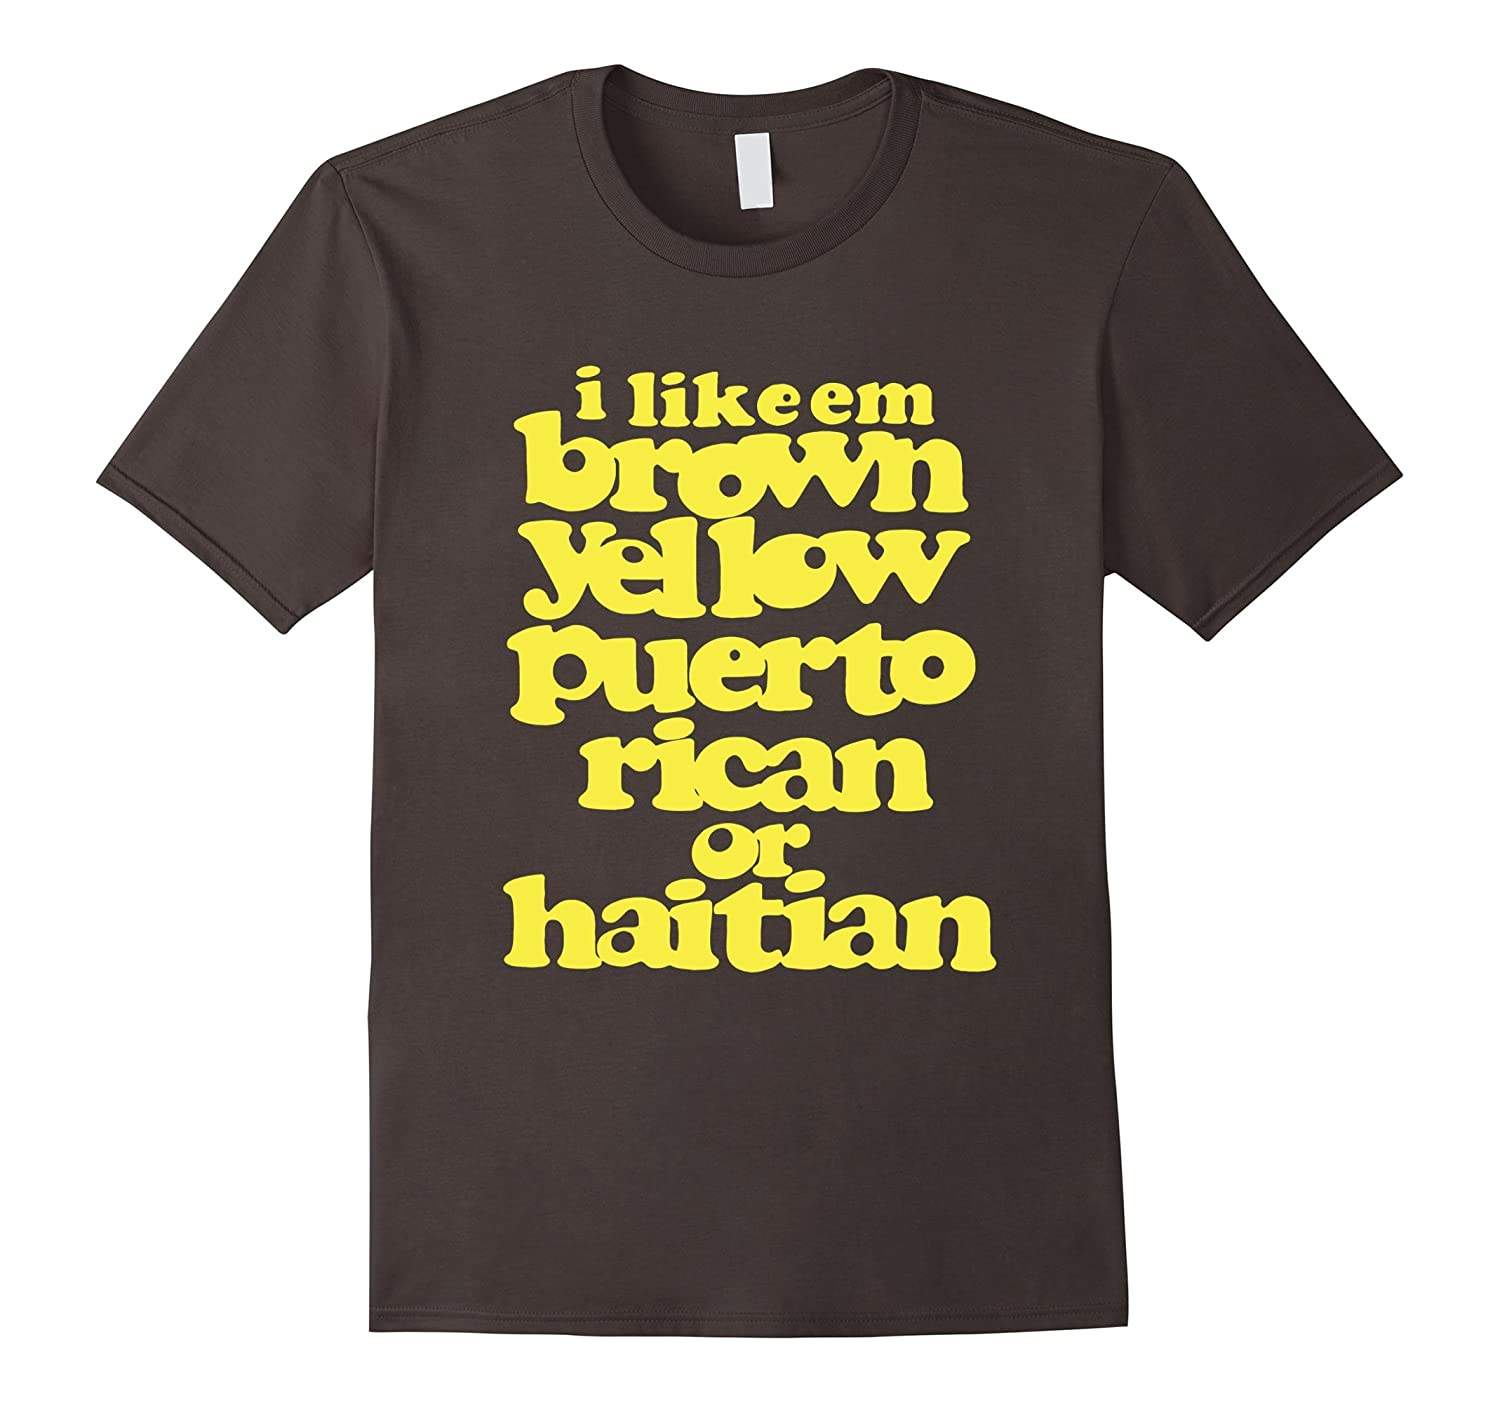 Brown yellow puerto rican or haitian